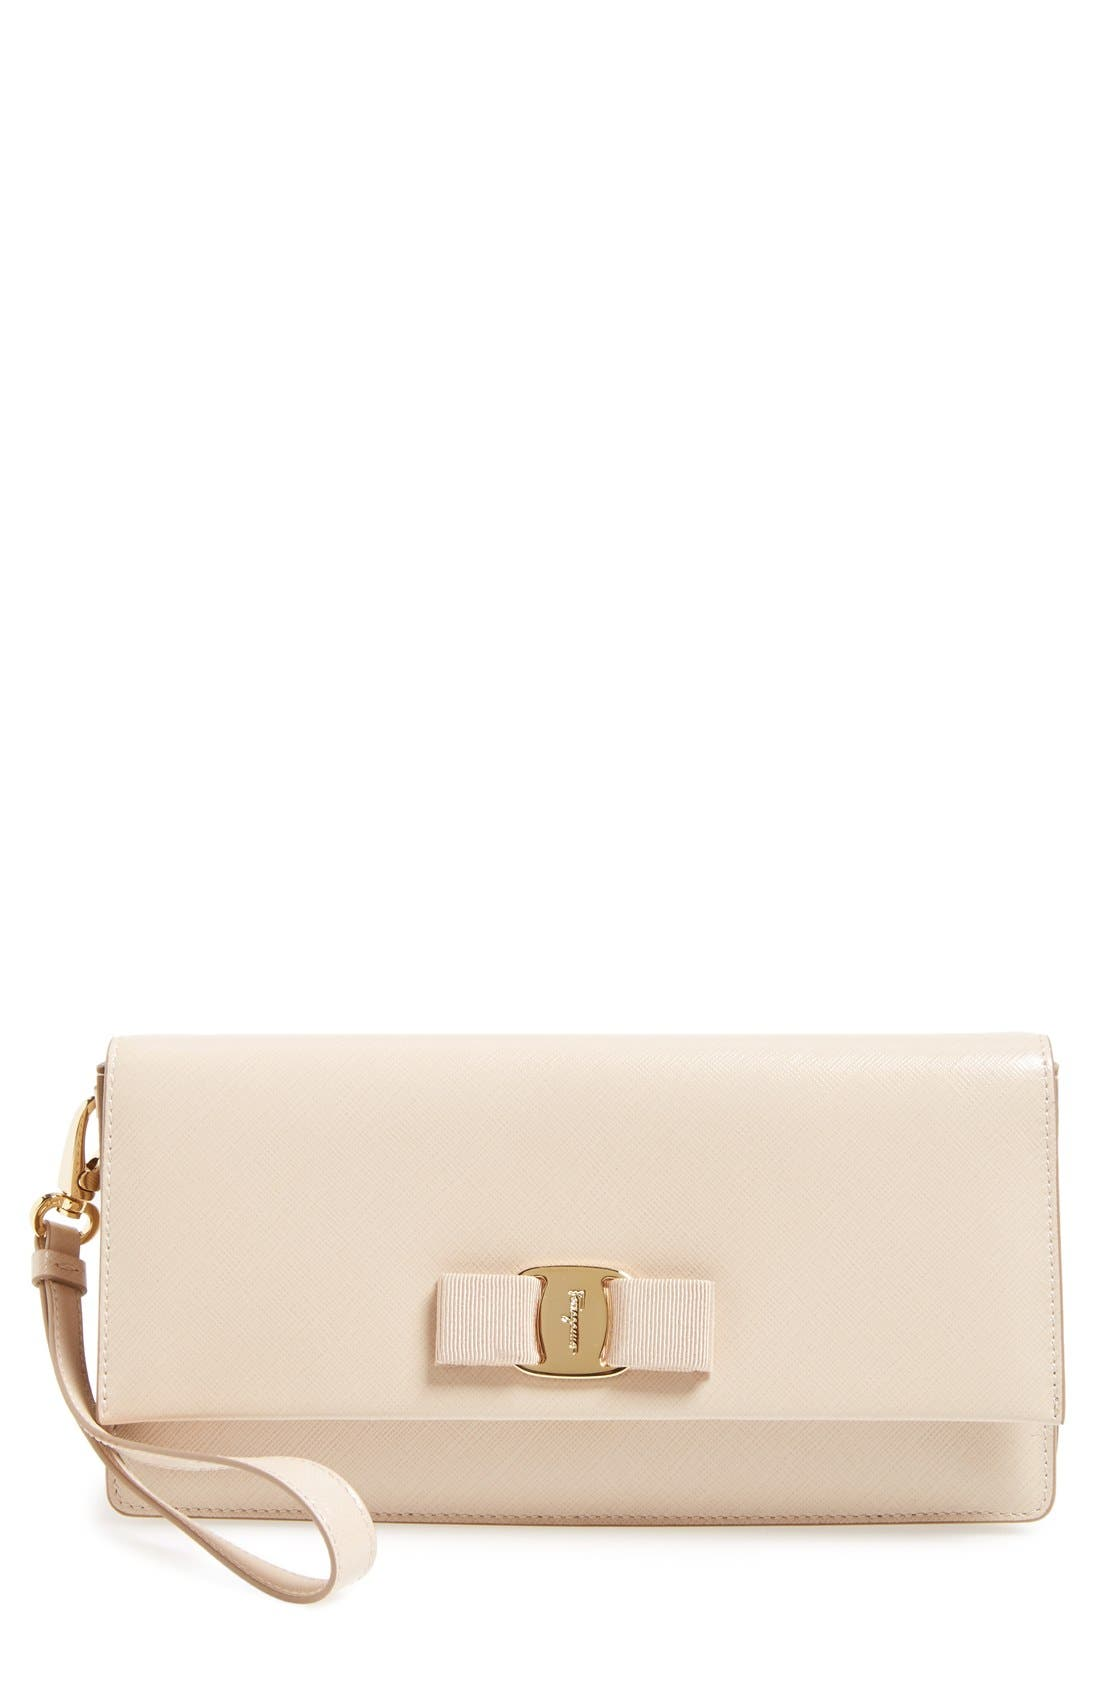 'Camy' Clutch,                         Main,                         color, New Bisque